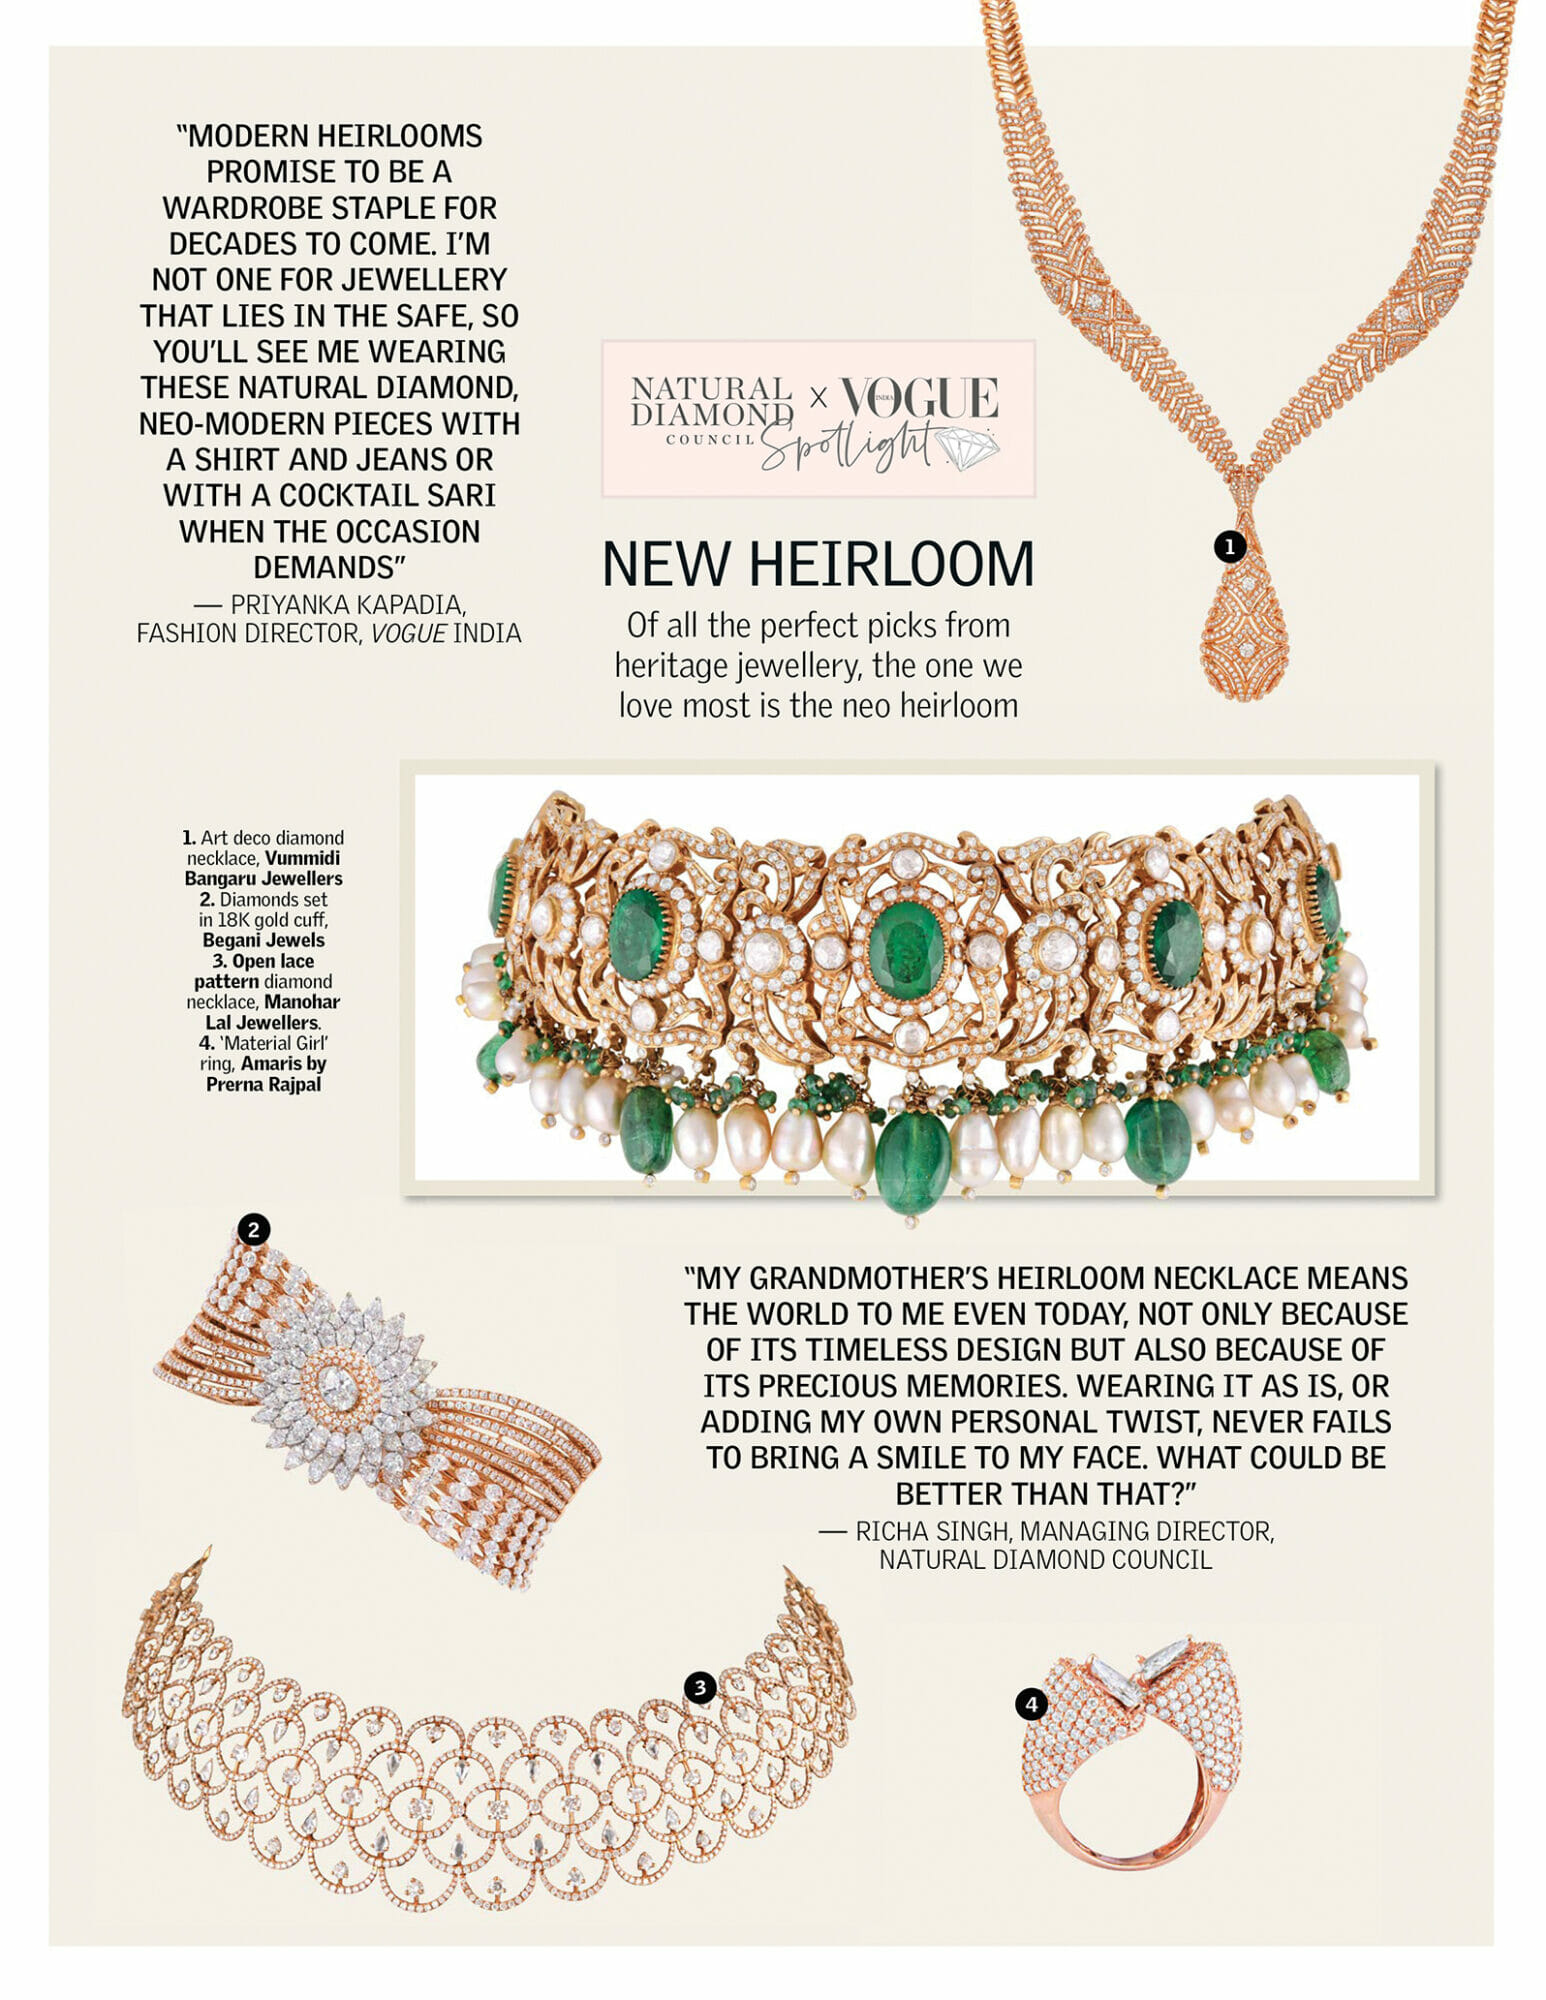 vogue-ndc-jewellery-trend-report-5